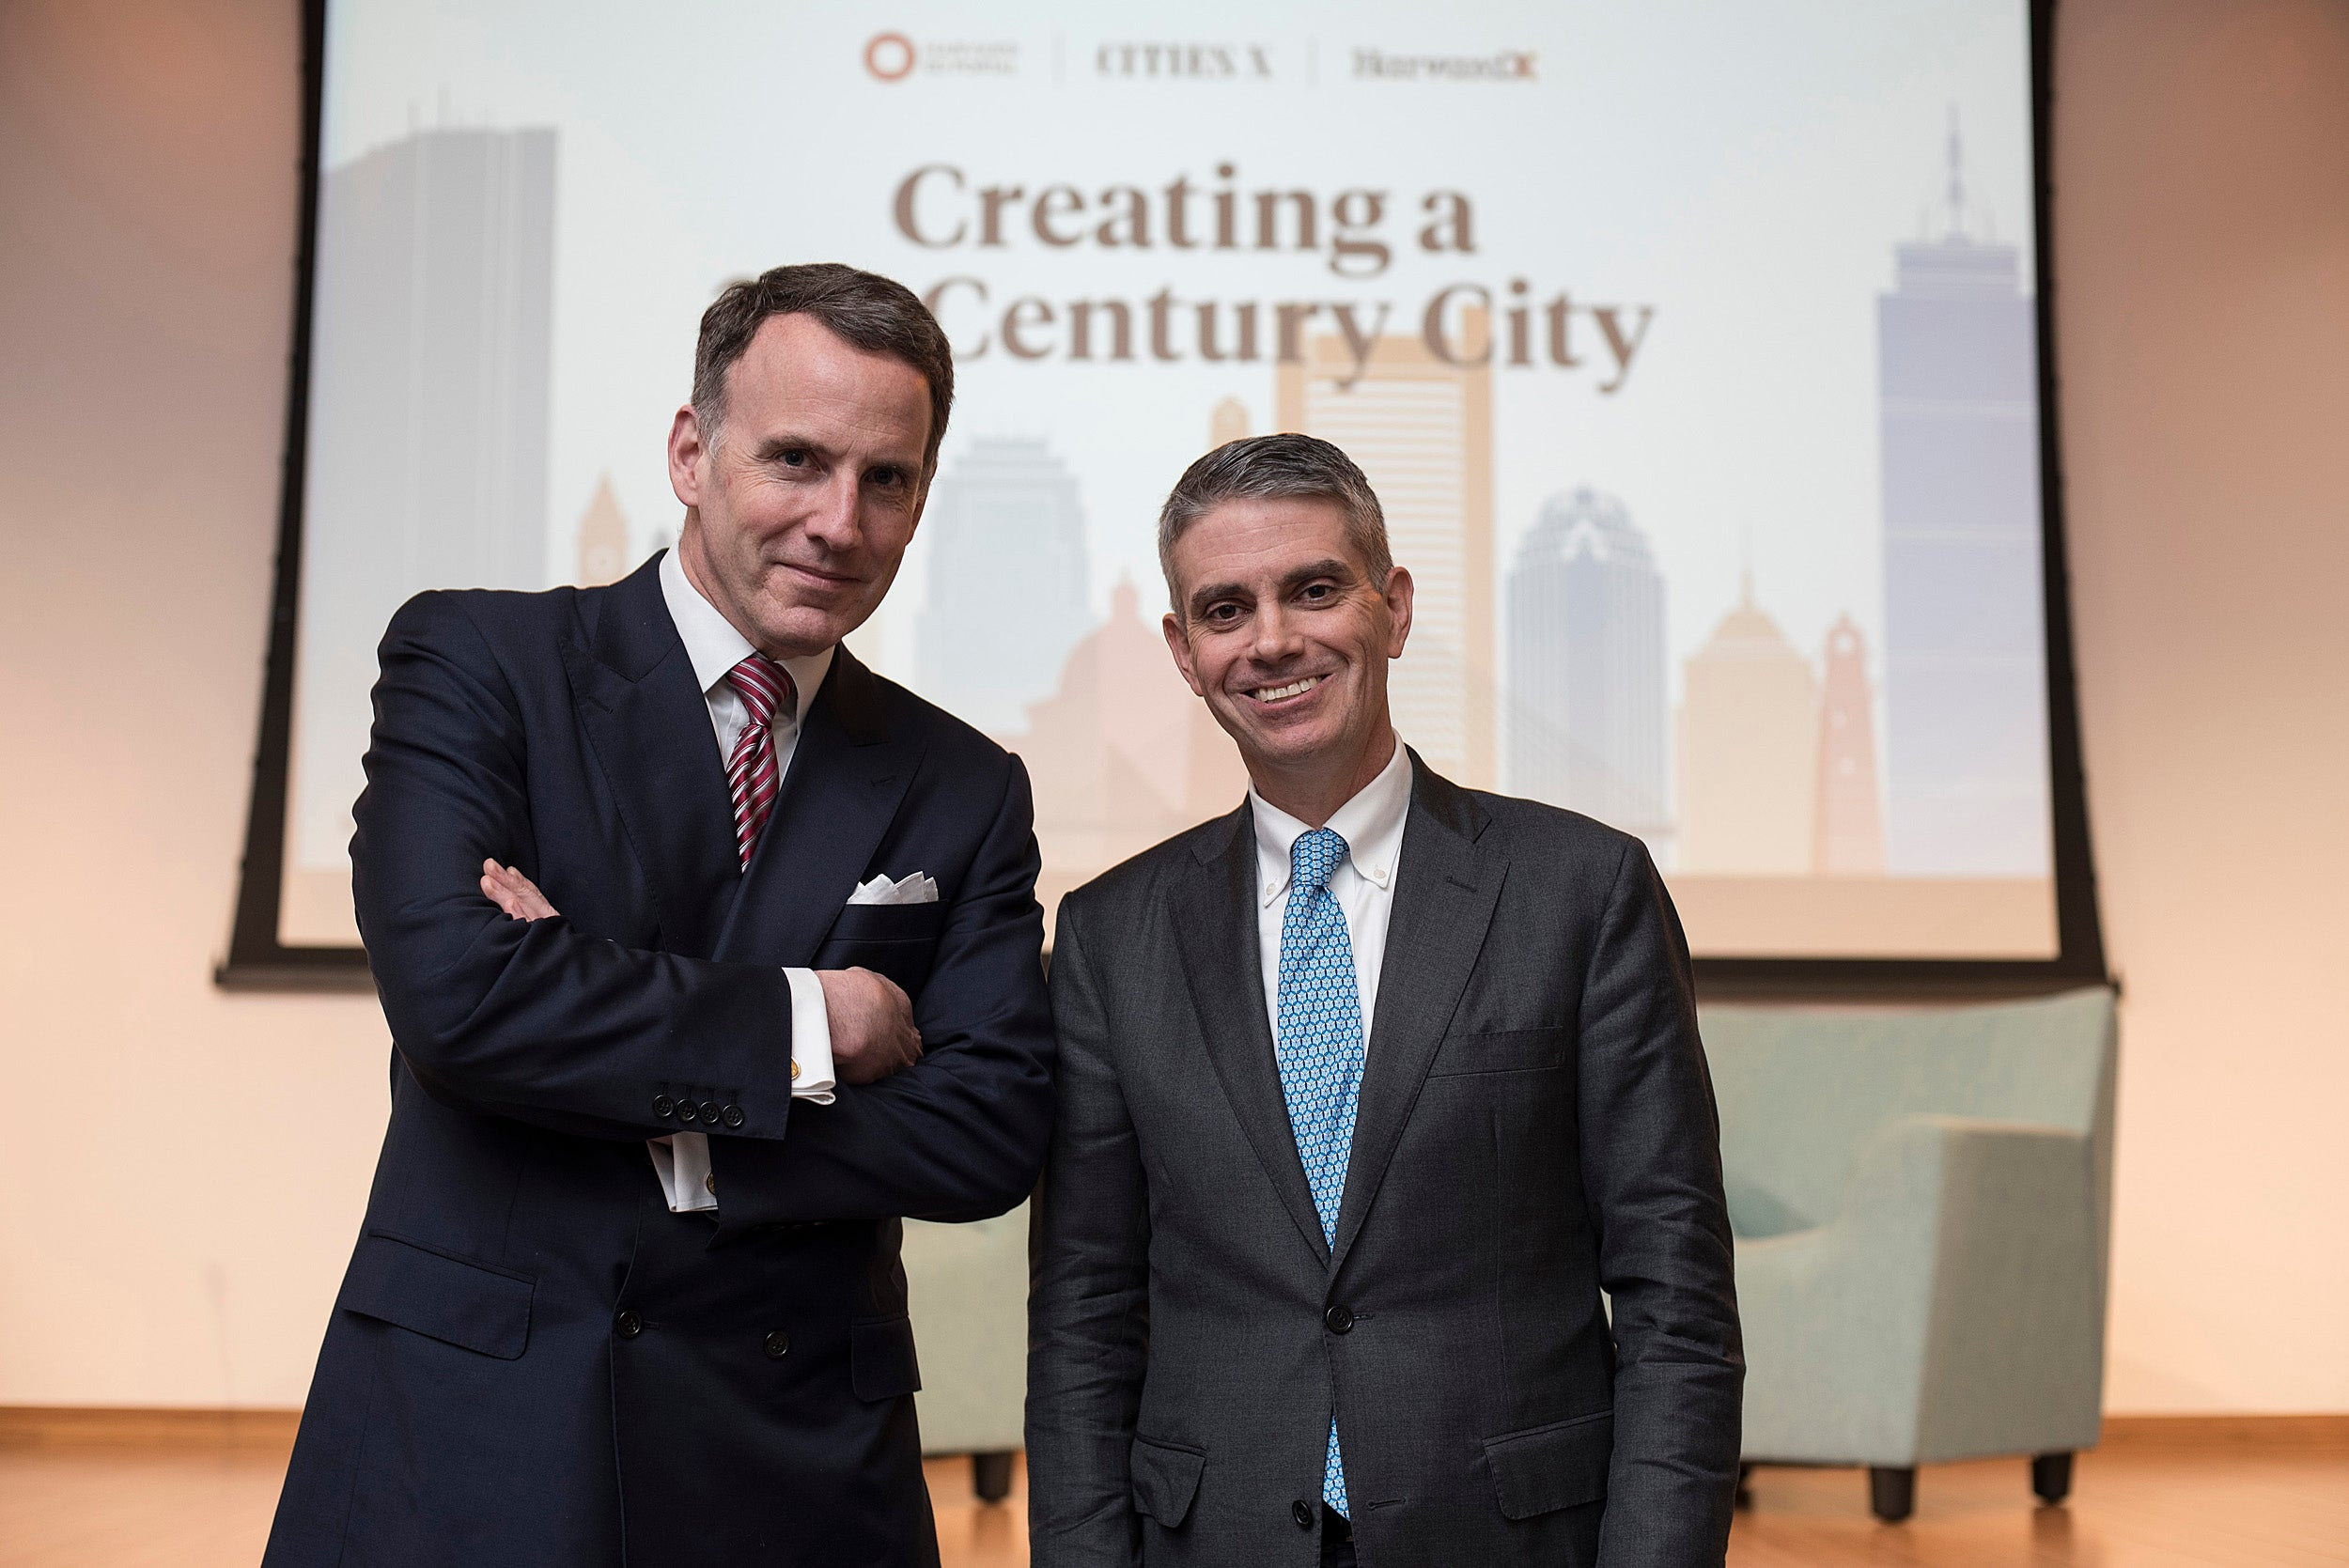 Professor Edward Glaeser (left) joined BPDA Director Brian Golden '87 at the Ed Portal for a discussion on the future of cities as humans increasingly become an urban species.